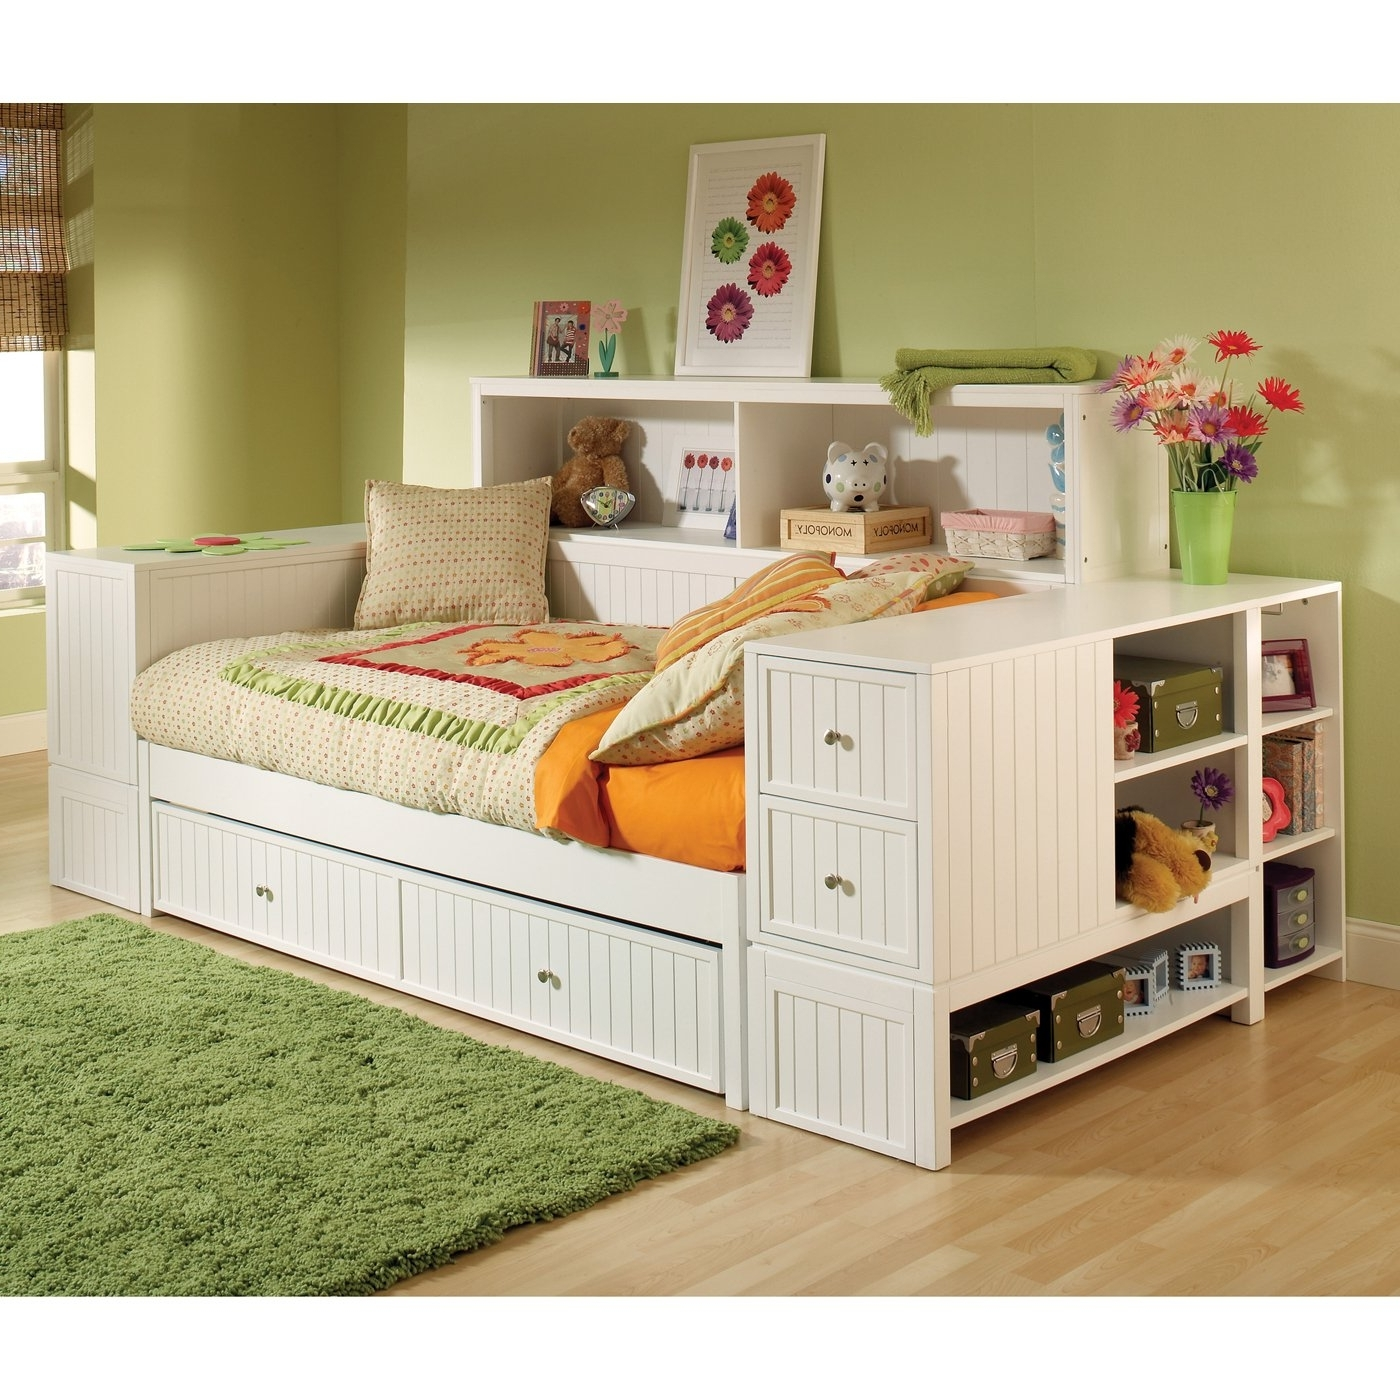 Recent Bookcases Ideas: Bed With Bookcase Storage Kids Platform Bed With For Bookcases Bed (View 14 of 15)